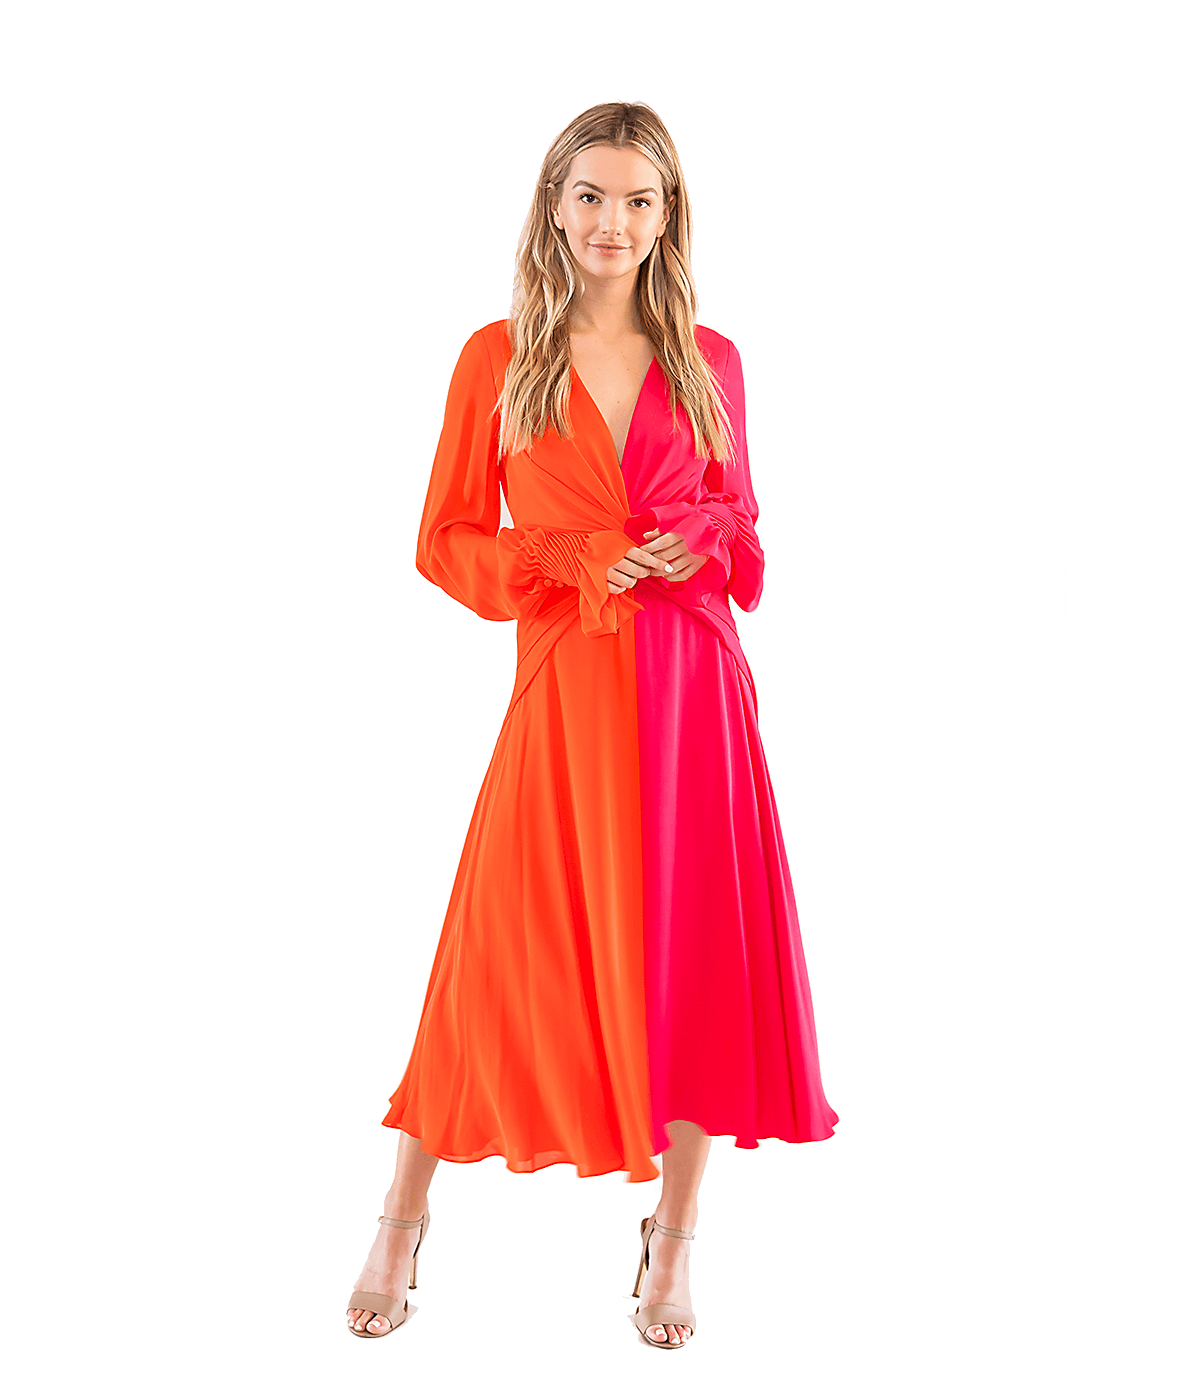 FINAL SALE Two-Tone Knotted Silk Dress - Lady Jetset